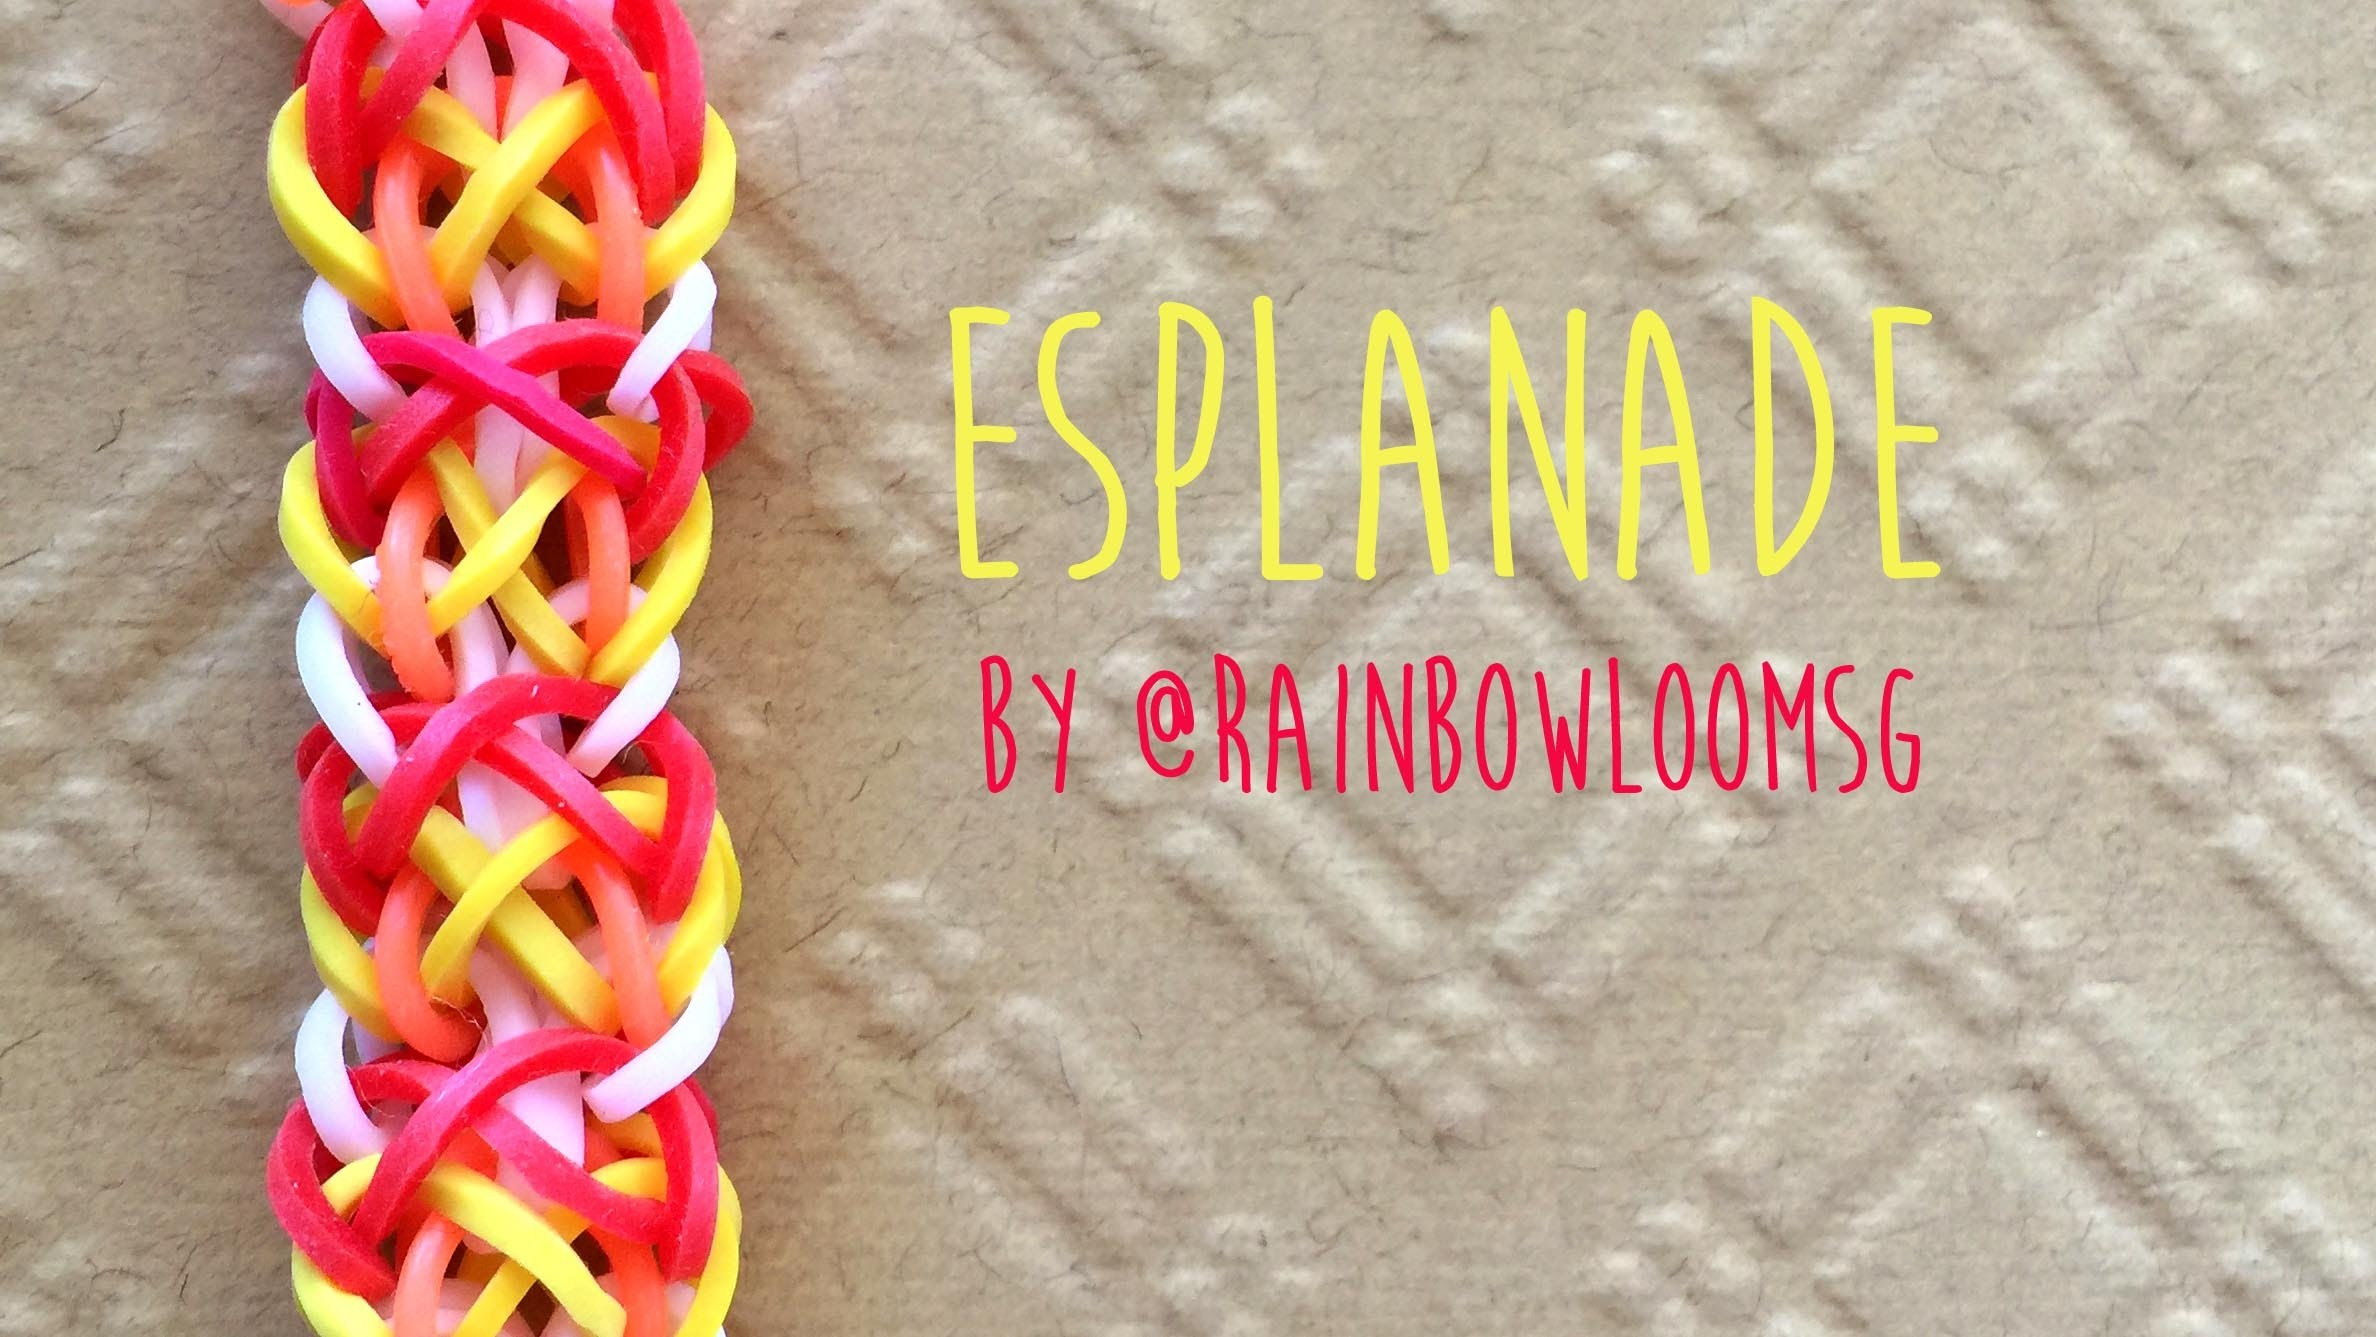 Rainbow Loom Band Esplanade Bracelet by @RainbowLoomSG